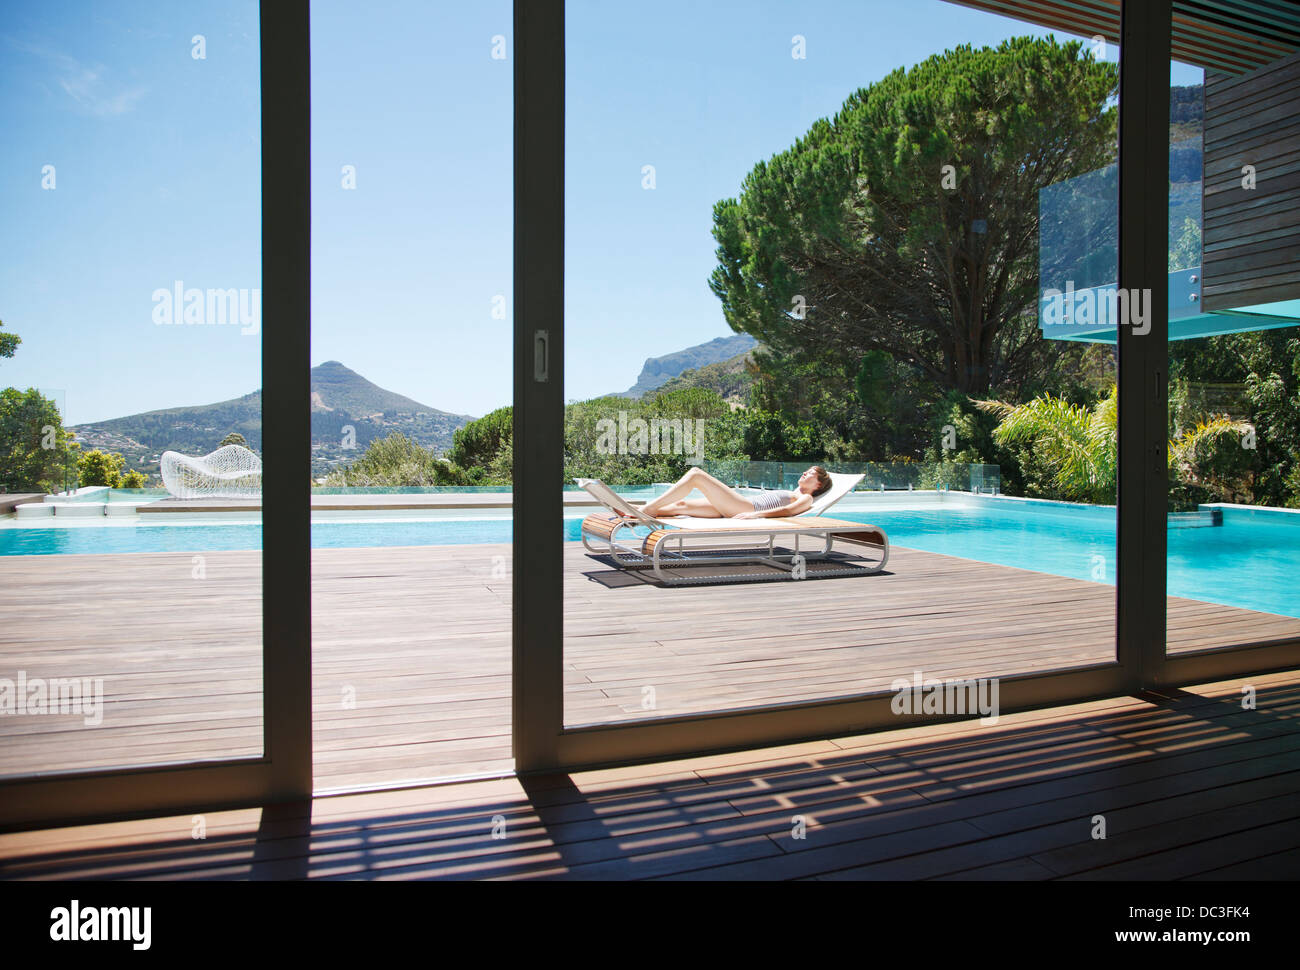 Woman sunbathing on lounge chair next to luxury swimming pool with mountain view Stock Photo